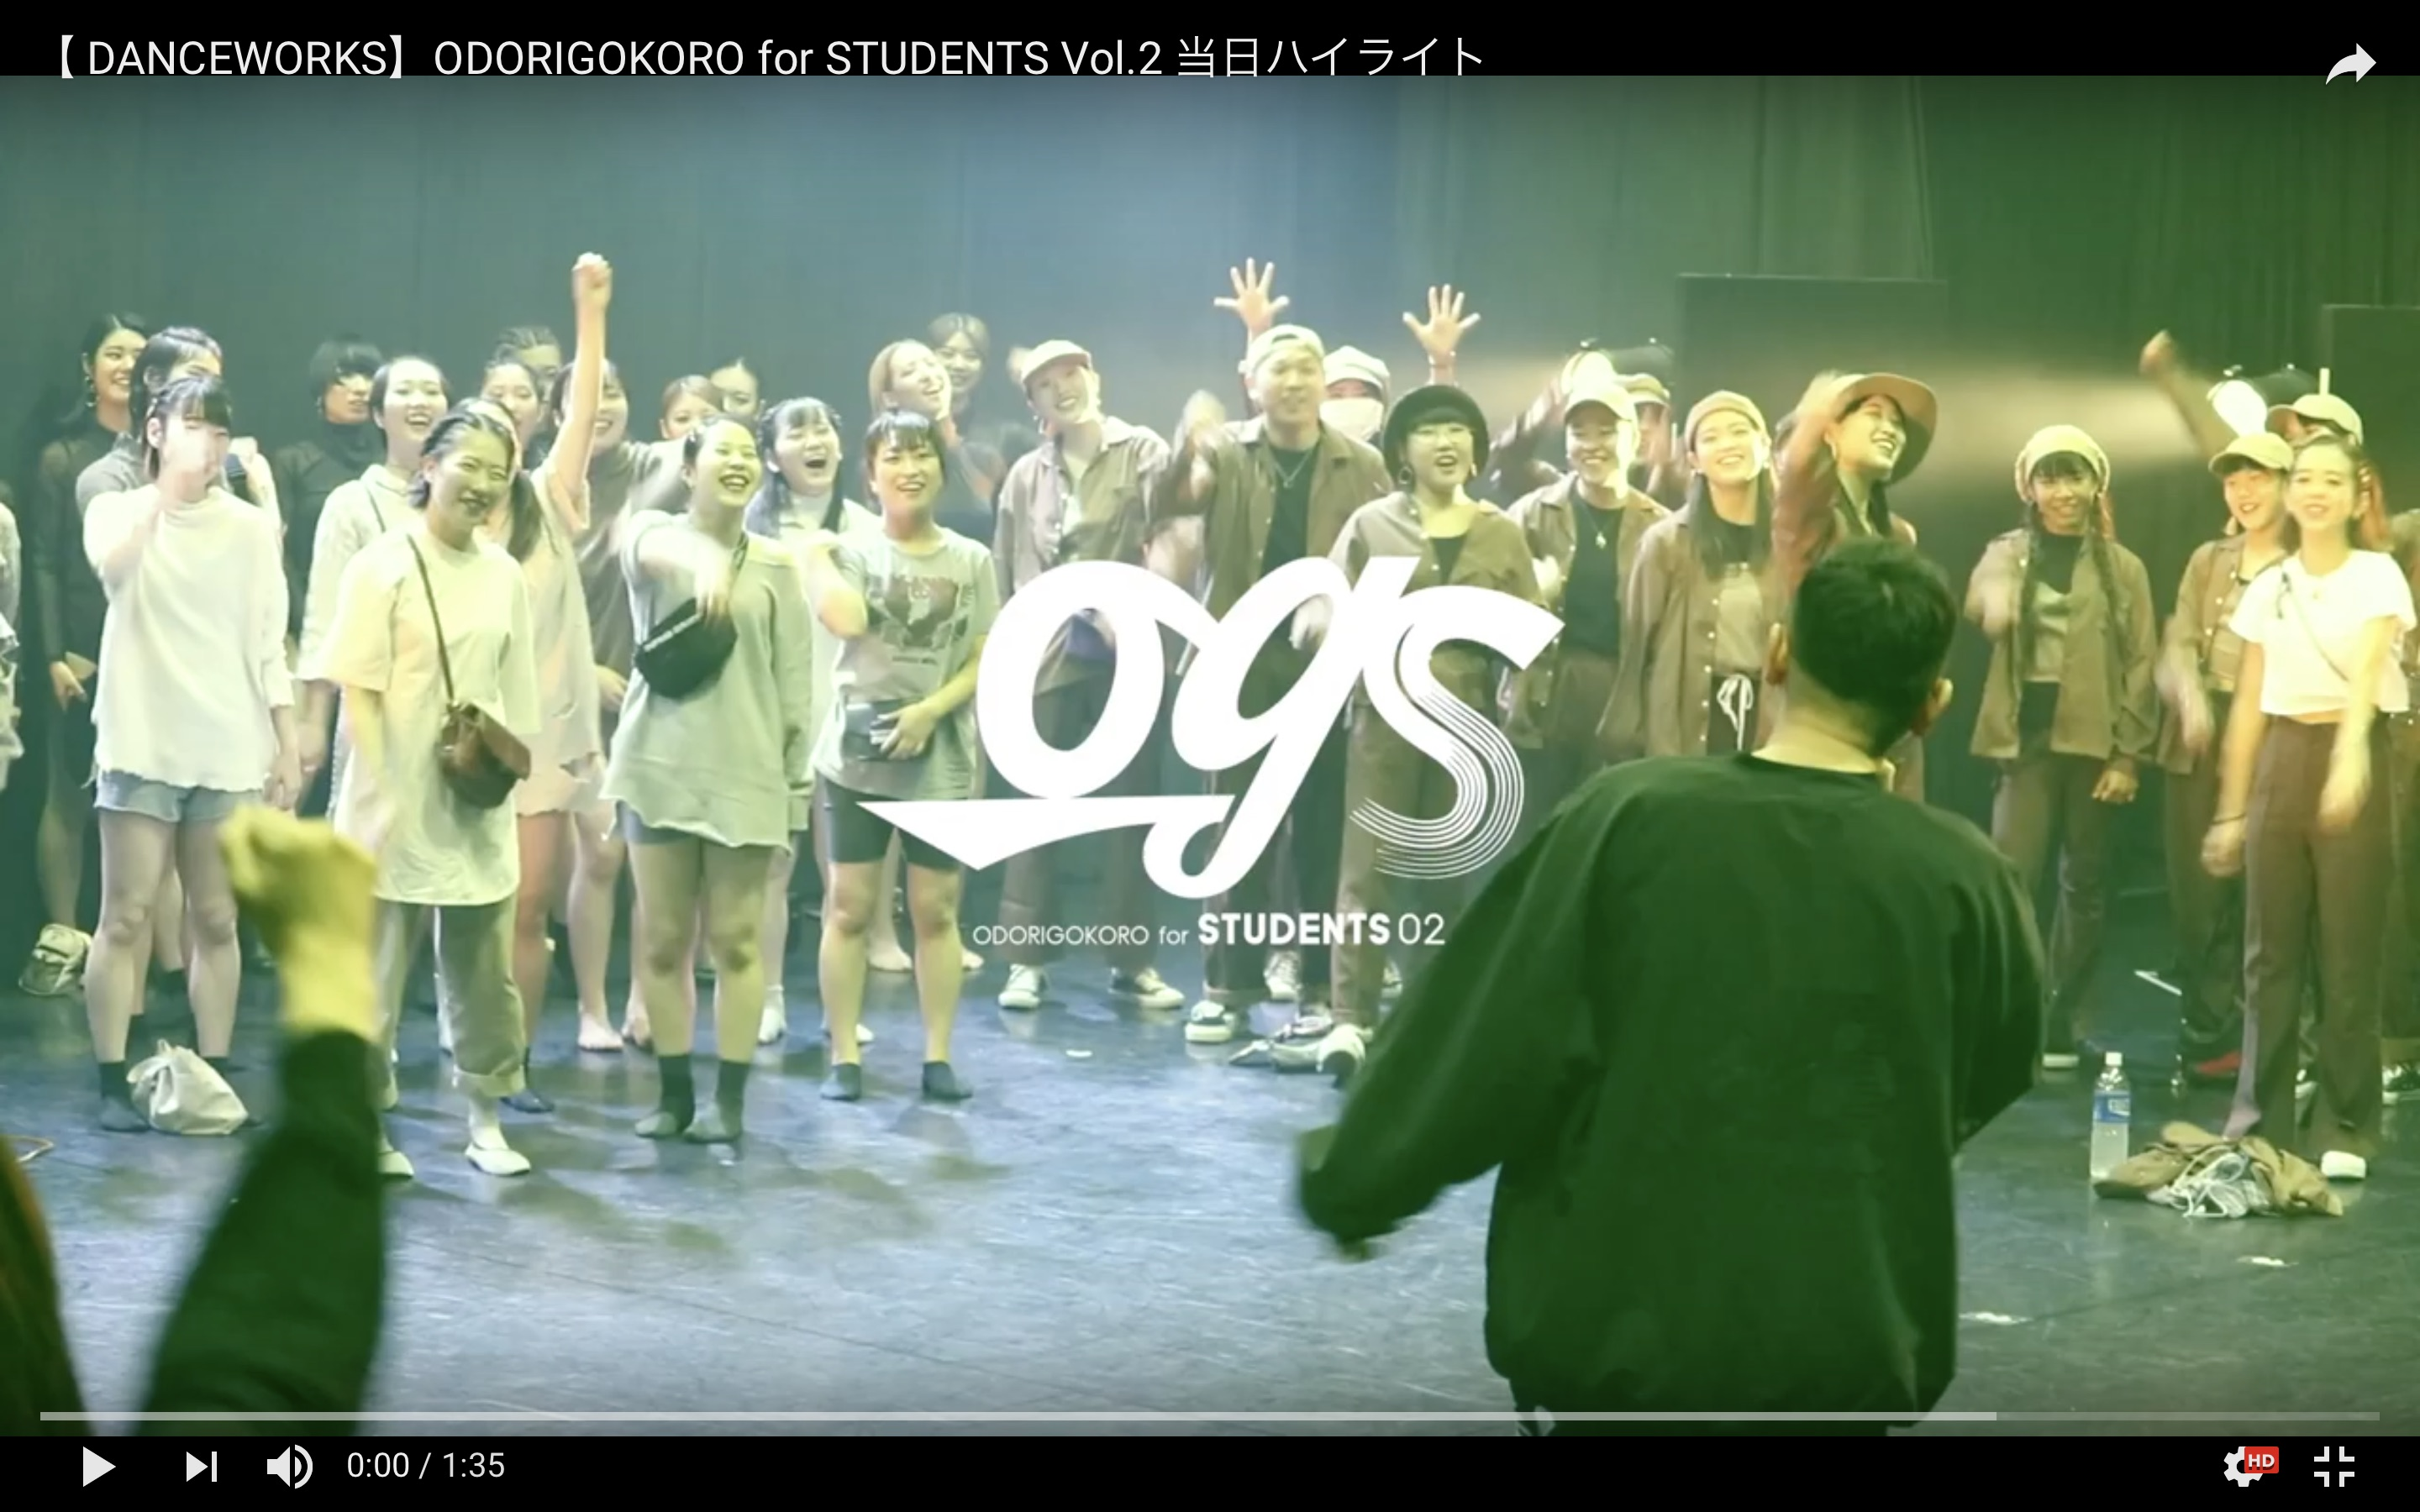 ODORIGOKORO for STUDENTS vol.2 ハイライト映像公開!!